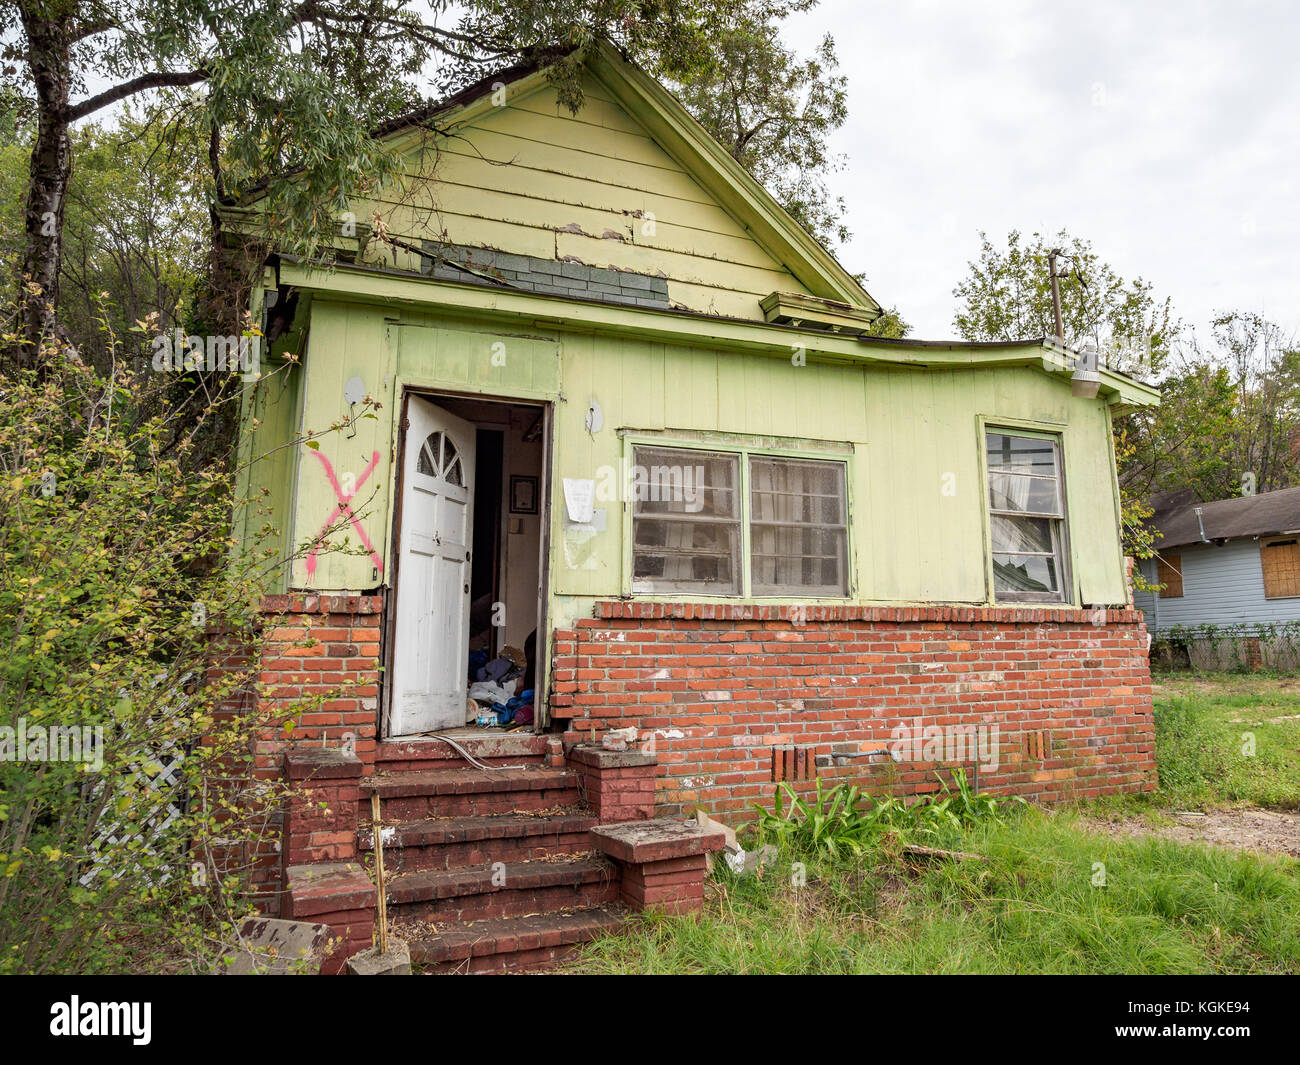 Boarded up, abandoned, house showing urban decline, decay, blight, and American poverty in Montgomery, Alabama USA. - Stock Image